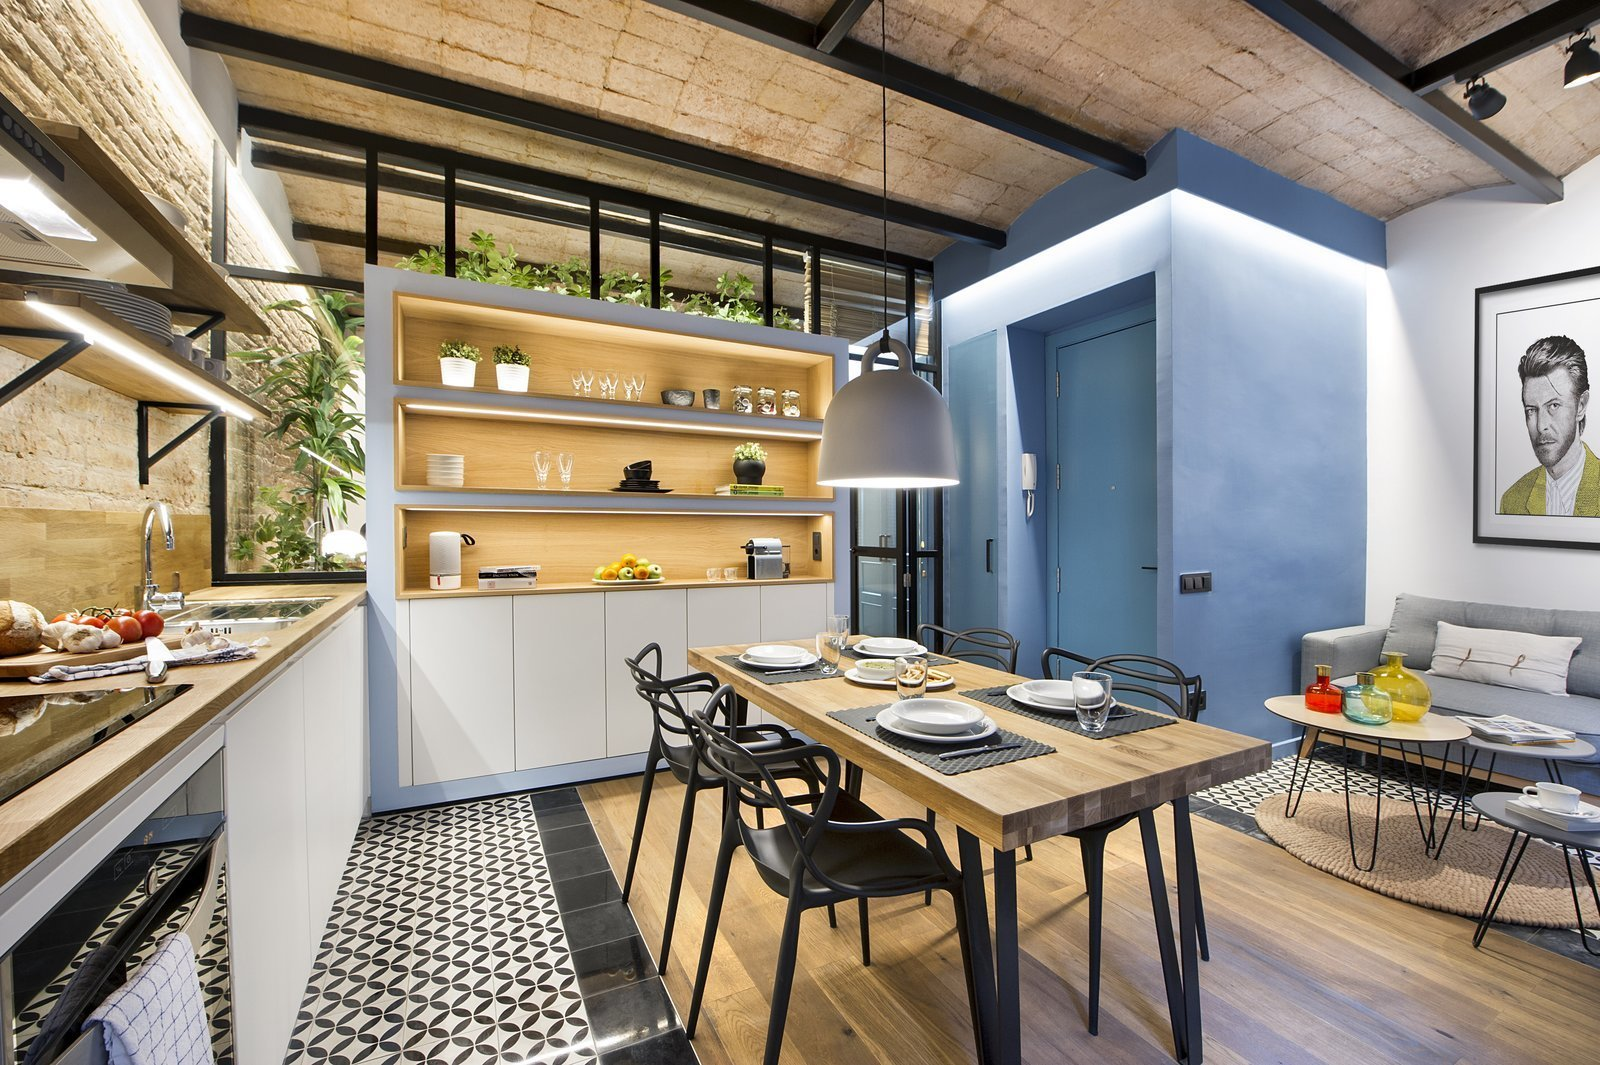 Tagged: Dining Room, Chair, Pendant Lighting, Ceiling Lighting, Table, Light Hardwood Floor, and Ceramic Tile Floor.  Photo 4 of 11 in A Smart Layout Maximizes Space in This Compact Urban Beach Apartment in Barcelona